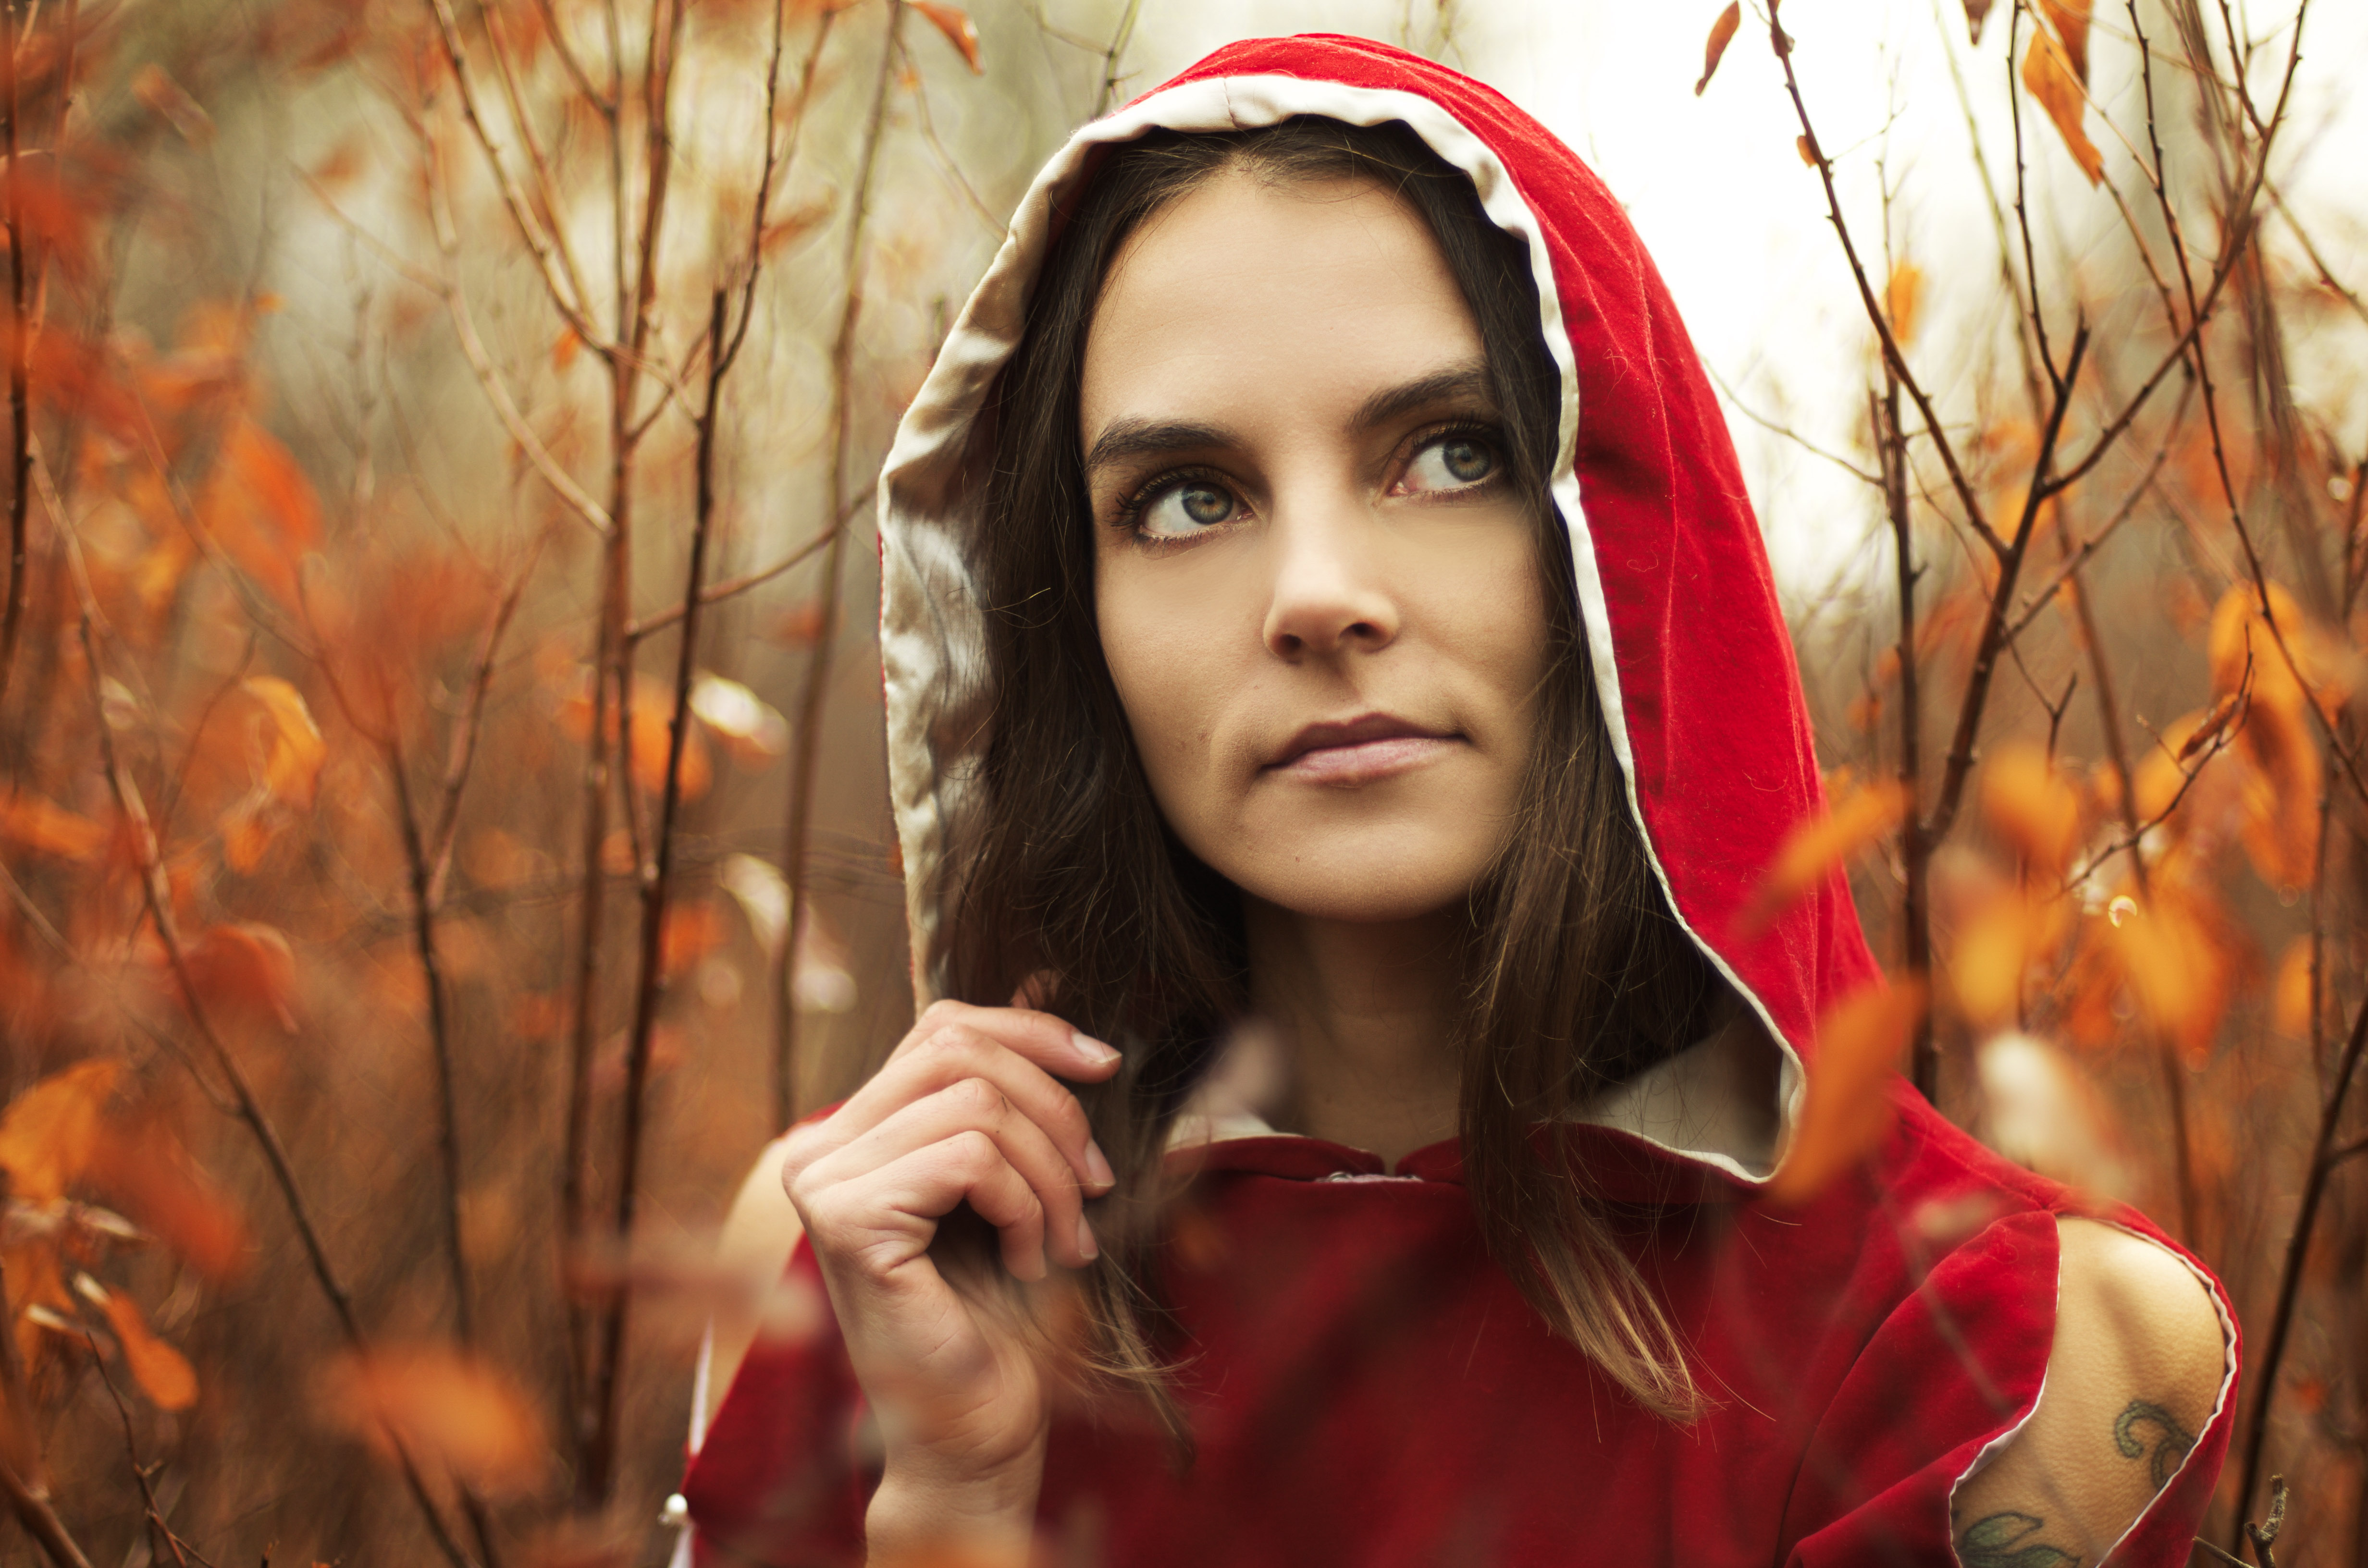 Red Riding Hood in Autumn Portrait